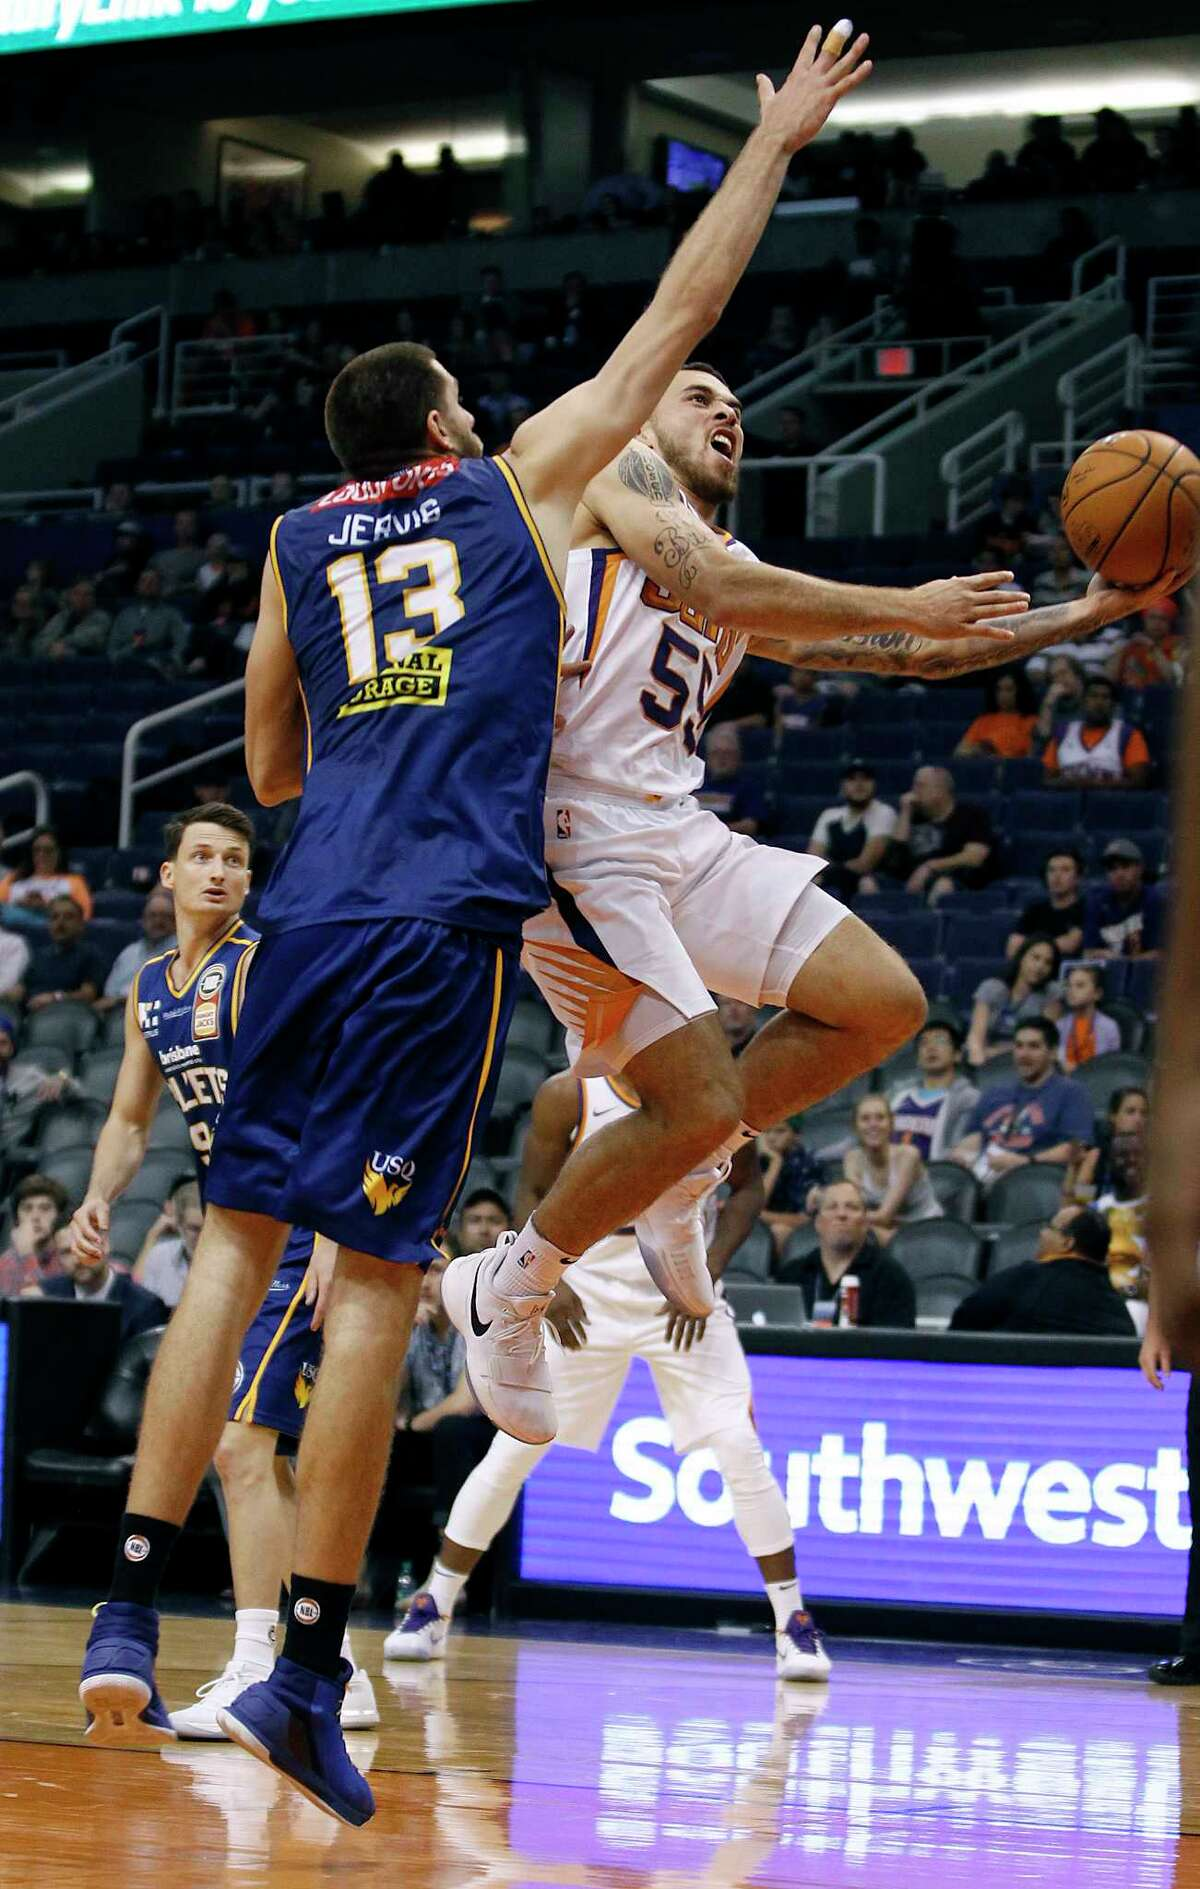 Phoenix Suns forward guard Mike James (55) drives to the basket as Brisbane Bullets forward Tom Jervis defends during the second half of an NBA basketball exhibition game Friday, Oct. 13, 2017, in Phoenix. (AP Photo/Ralph Freso)